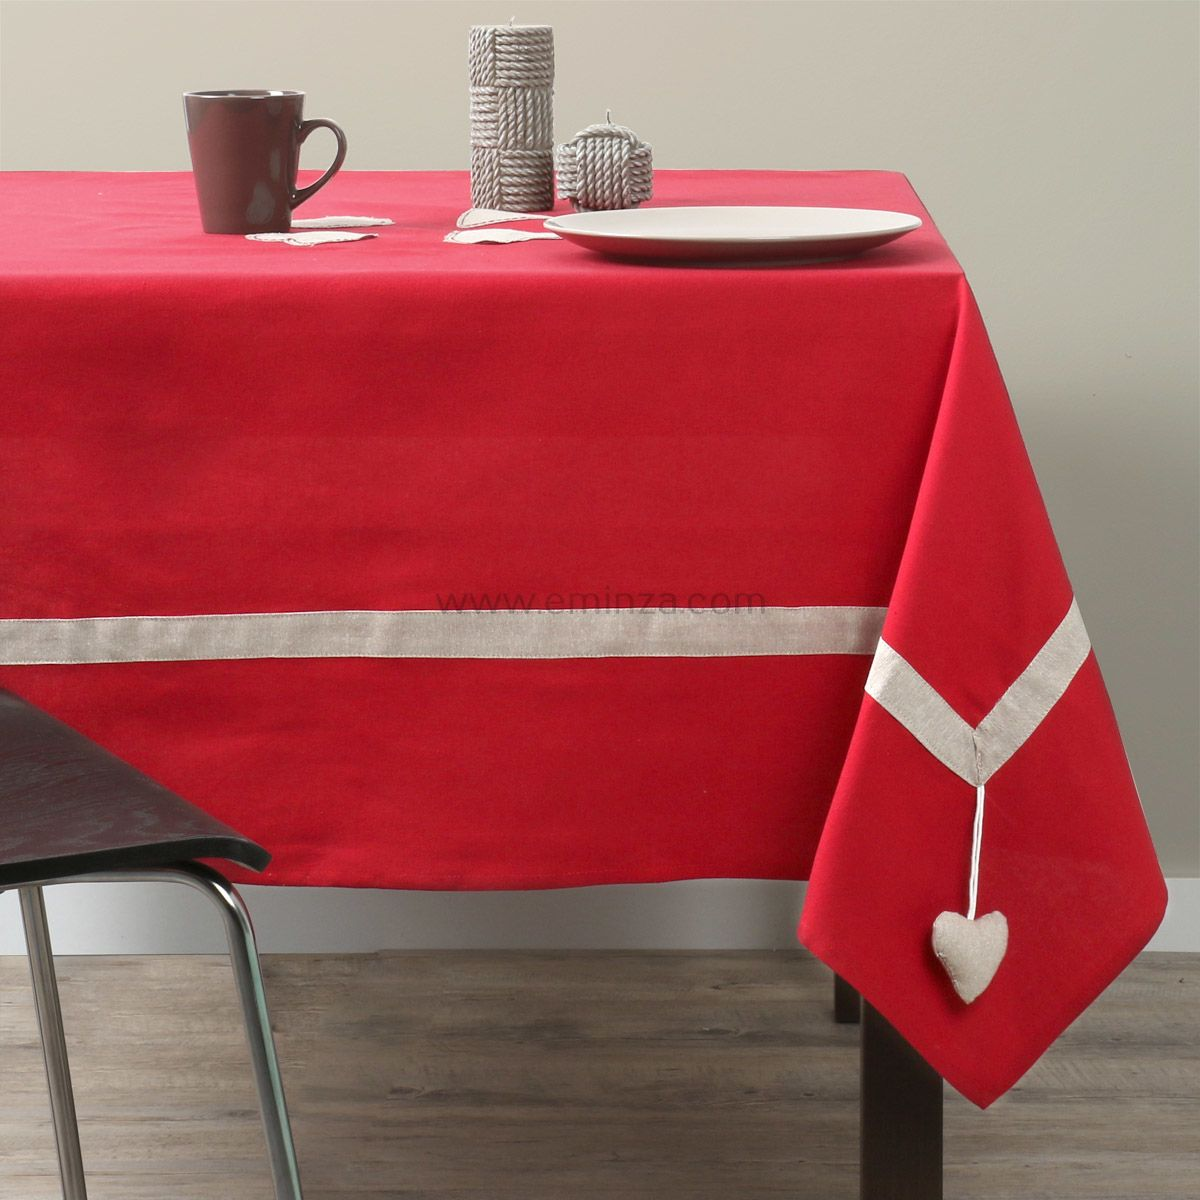 nappe rectangulaire l250 cm joliesse rouge nappe de table eminza. Black Bedroom Furniture Sets. Home Design Ideas